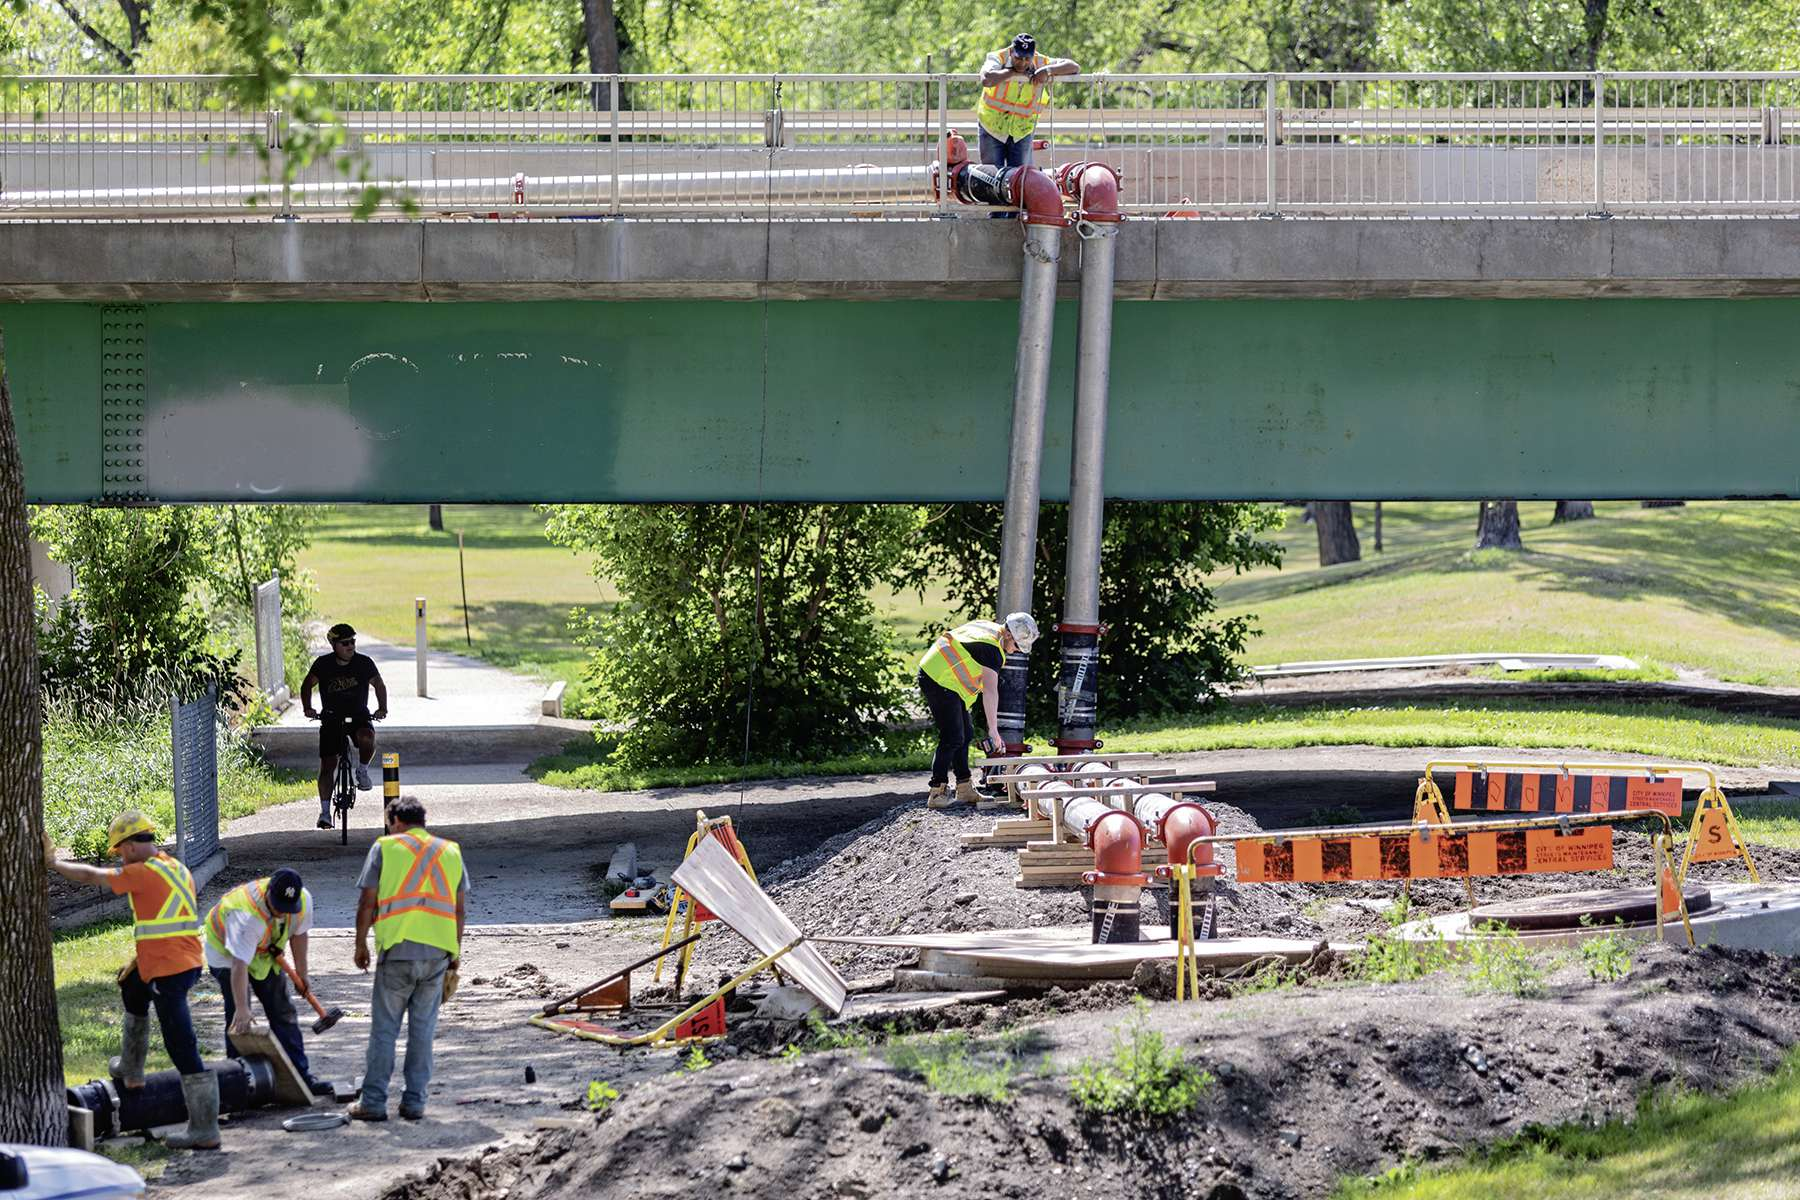 The temporary bypass of the Baltimore main force sewer crossing was constructed and installed in July 2019.